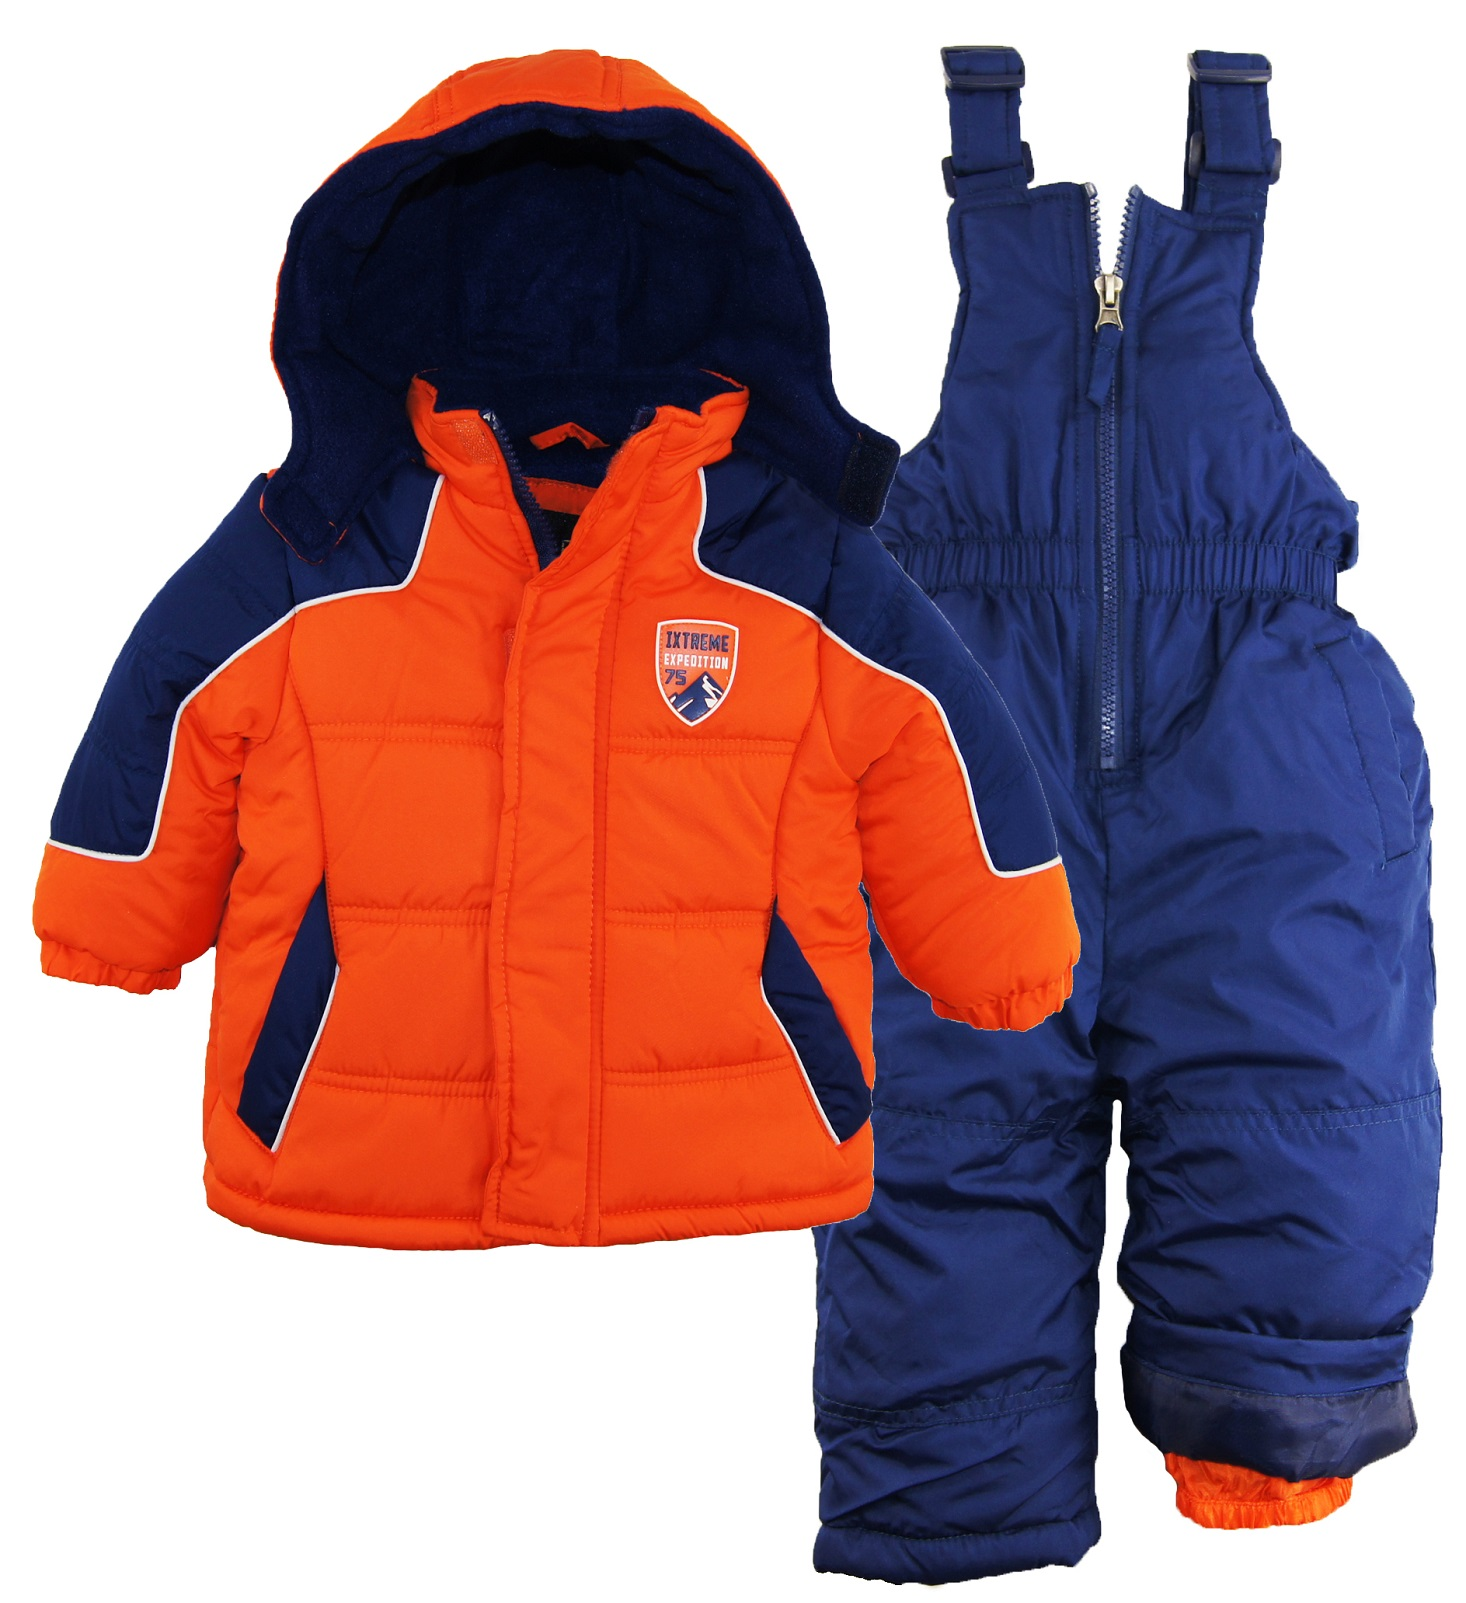 iXtreme Baby Boys Color Block Snowsuit Puffer Winter Jacket Ski Bib